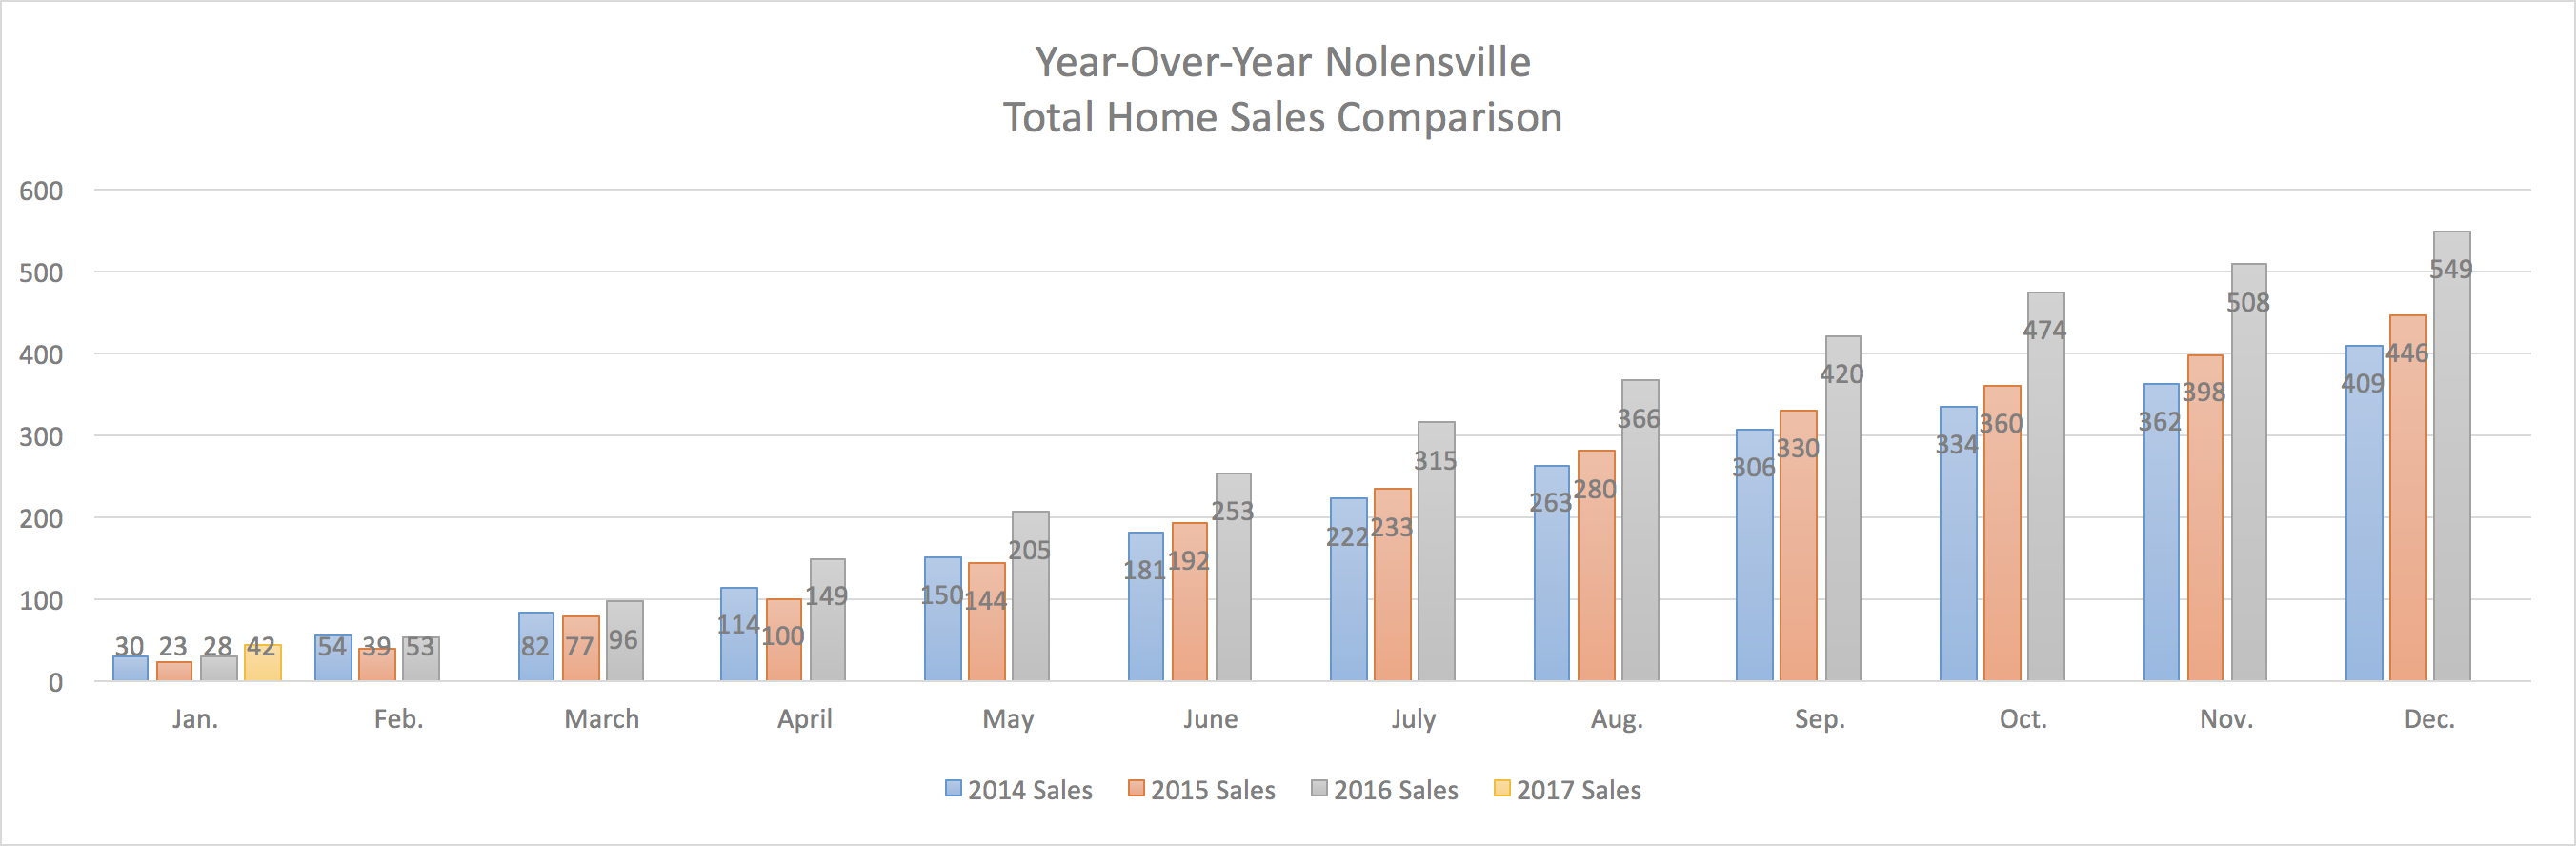 Nolensville Year-Over-Year Home Sales Through January 2017